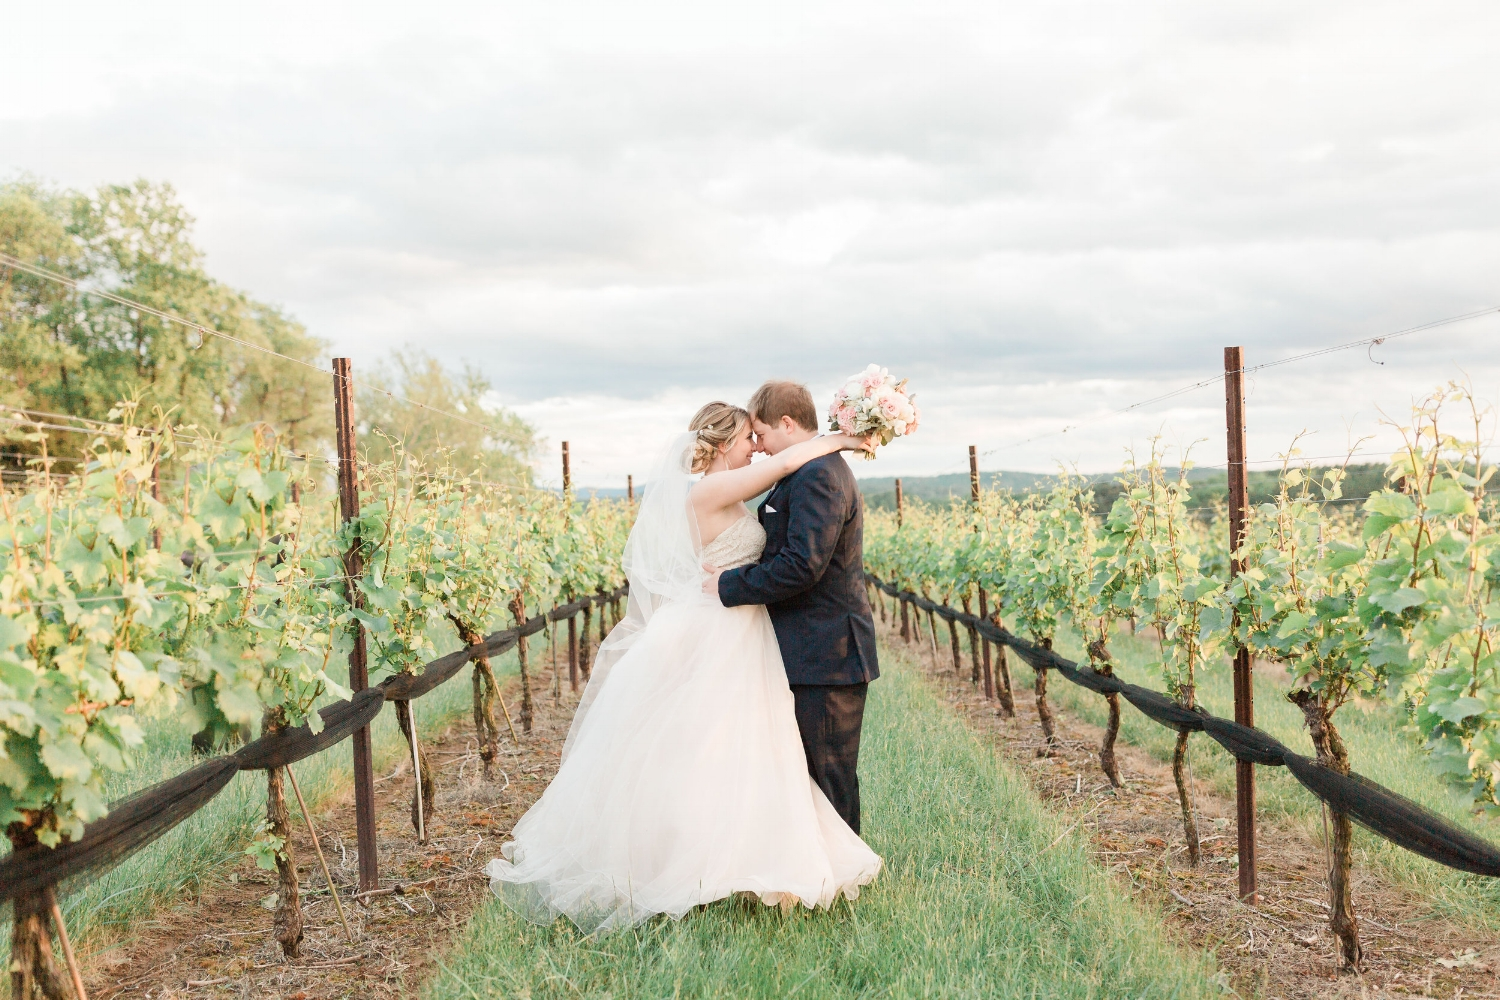 As an artist, I think of how the gray skies make this picture come alive in a way that would be impossible if the sun was shining brightly and the vineyard overtaken by blue skies. This pic is one of my favorites!